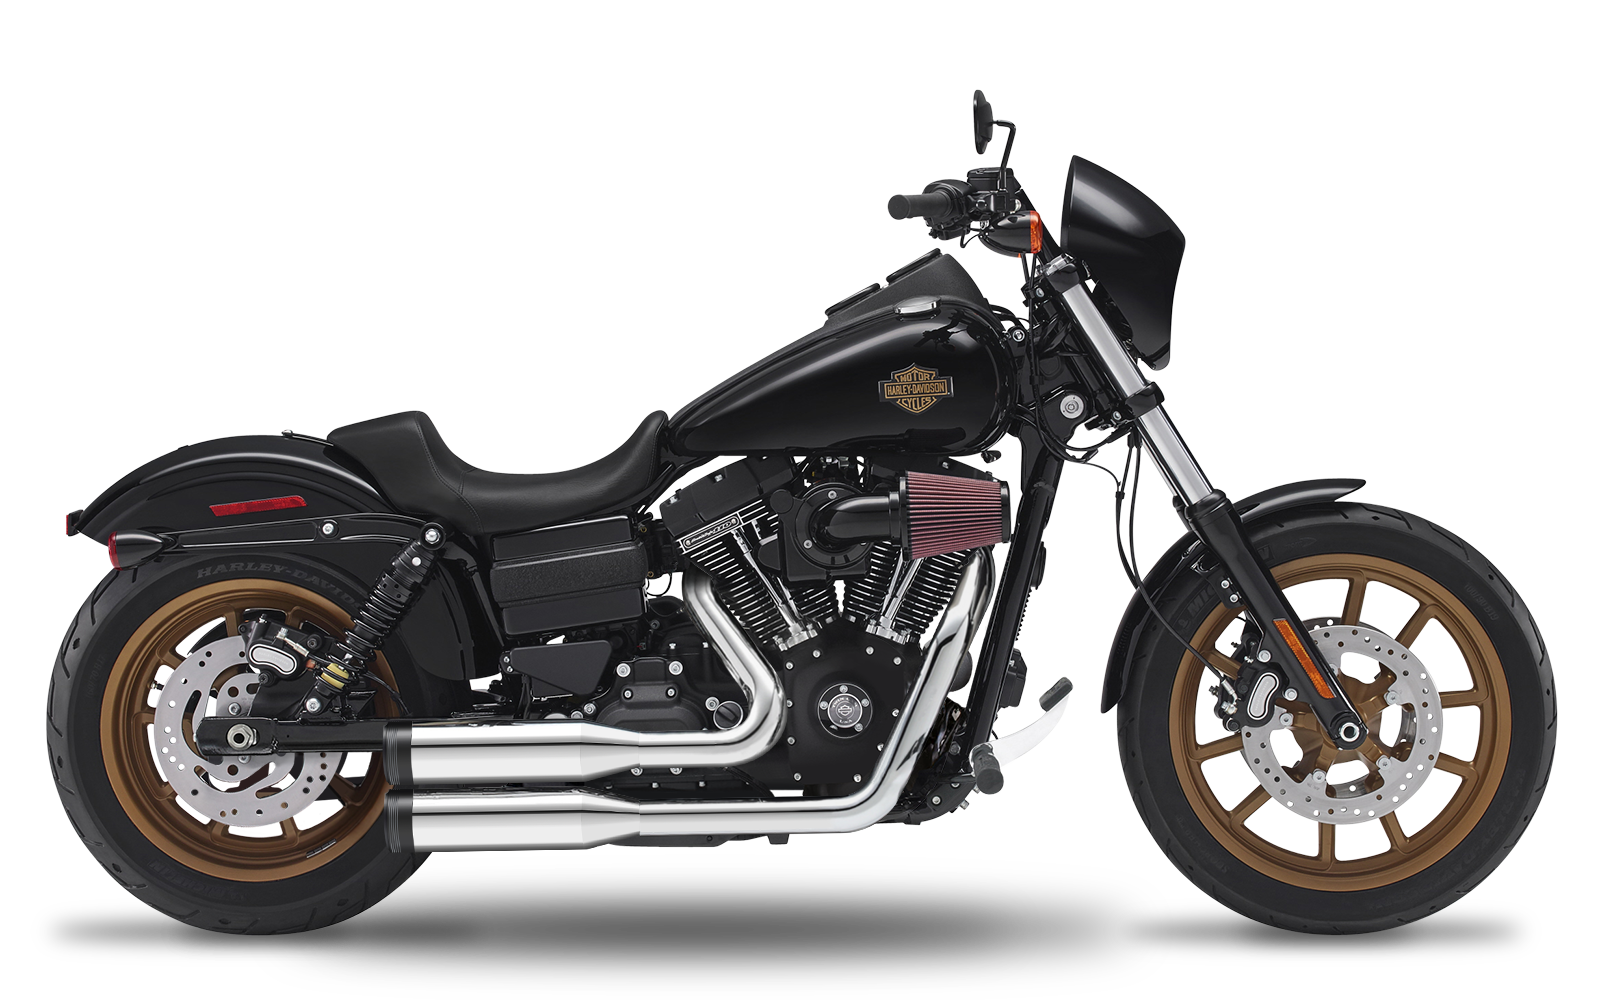 Dyna - Low Rider S - TC110 - 2016-2017 - Complete systems